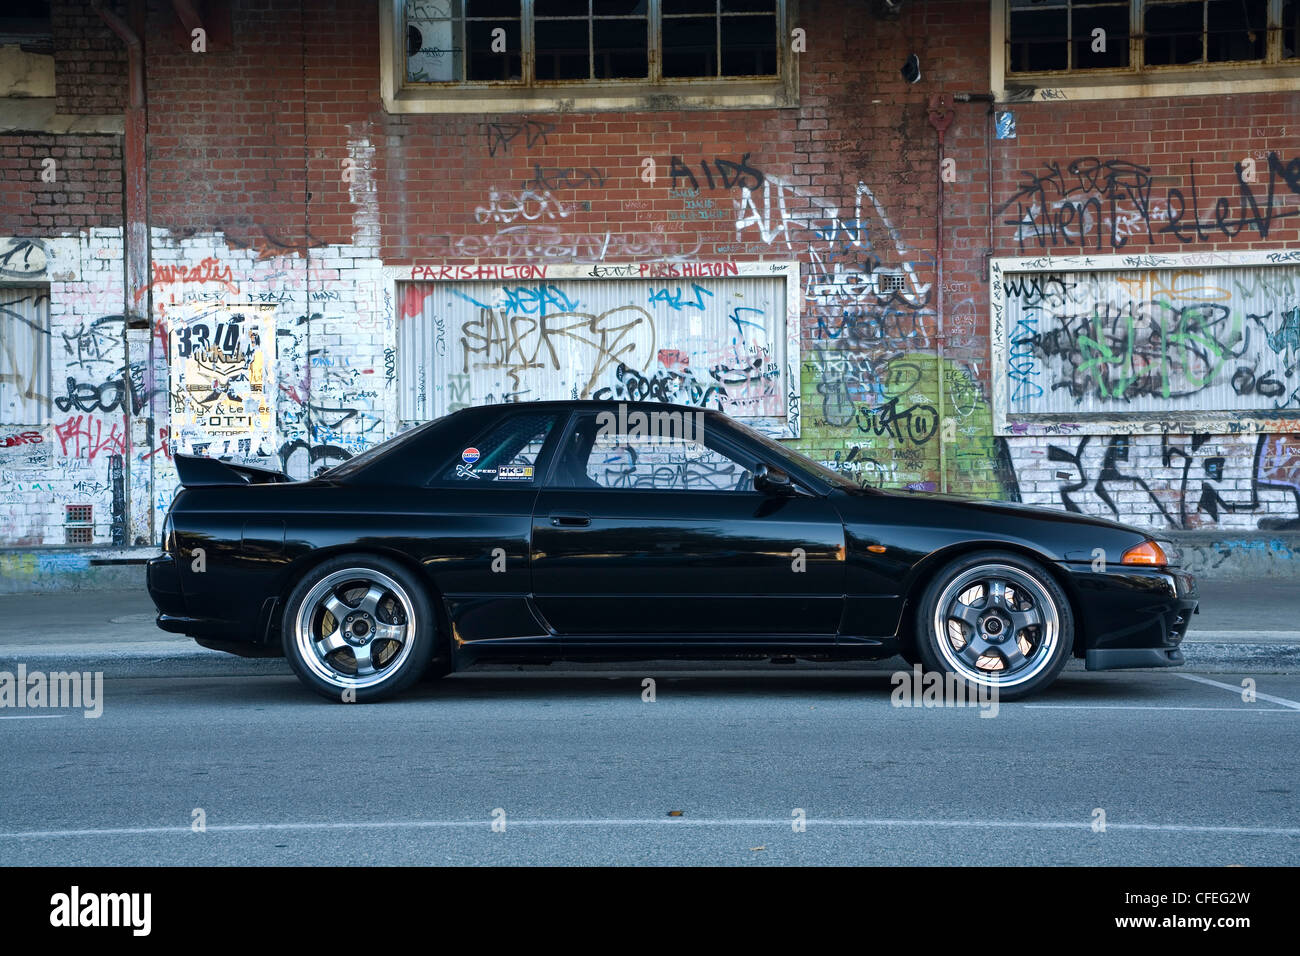 Nissan Skyline High Resolution Stock Photography And Images Alamy